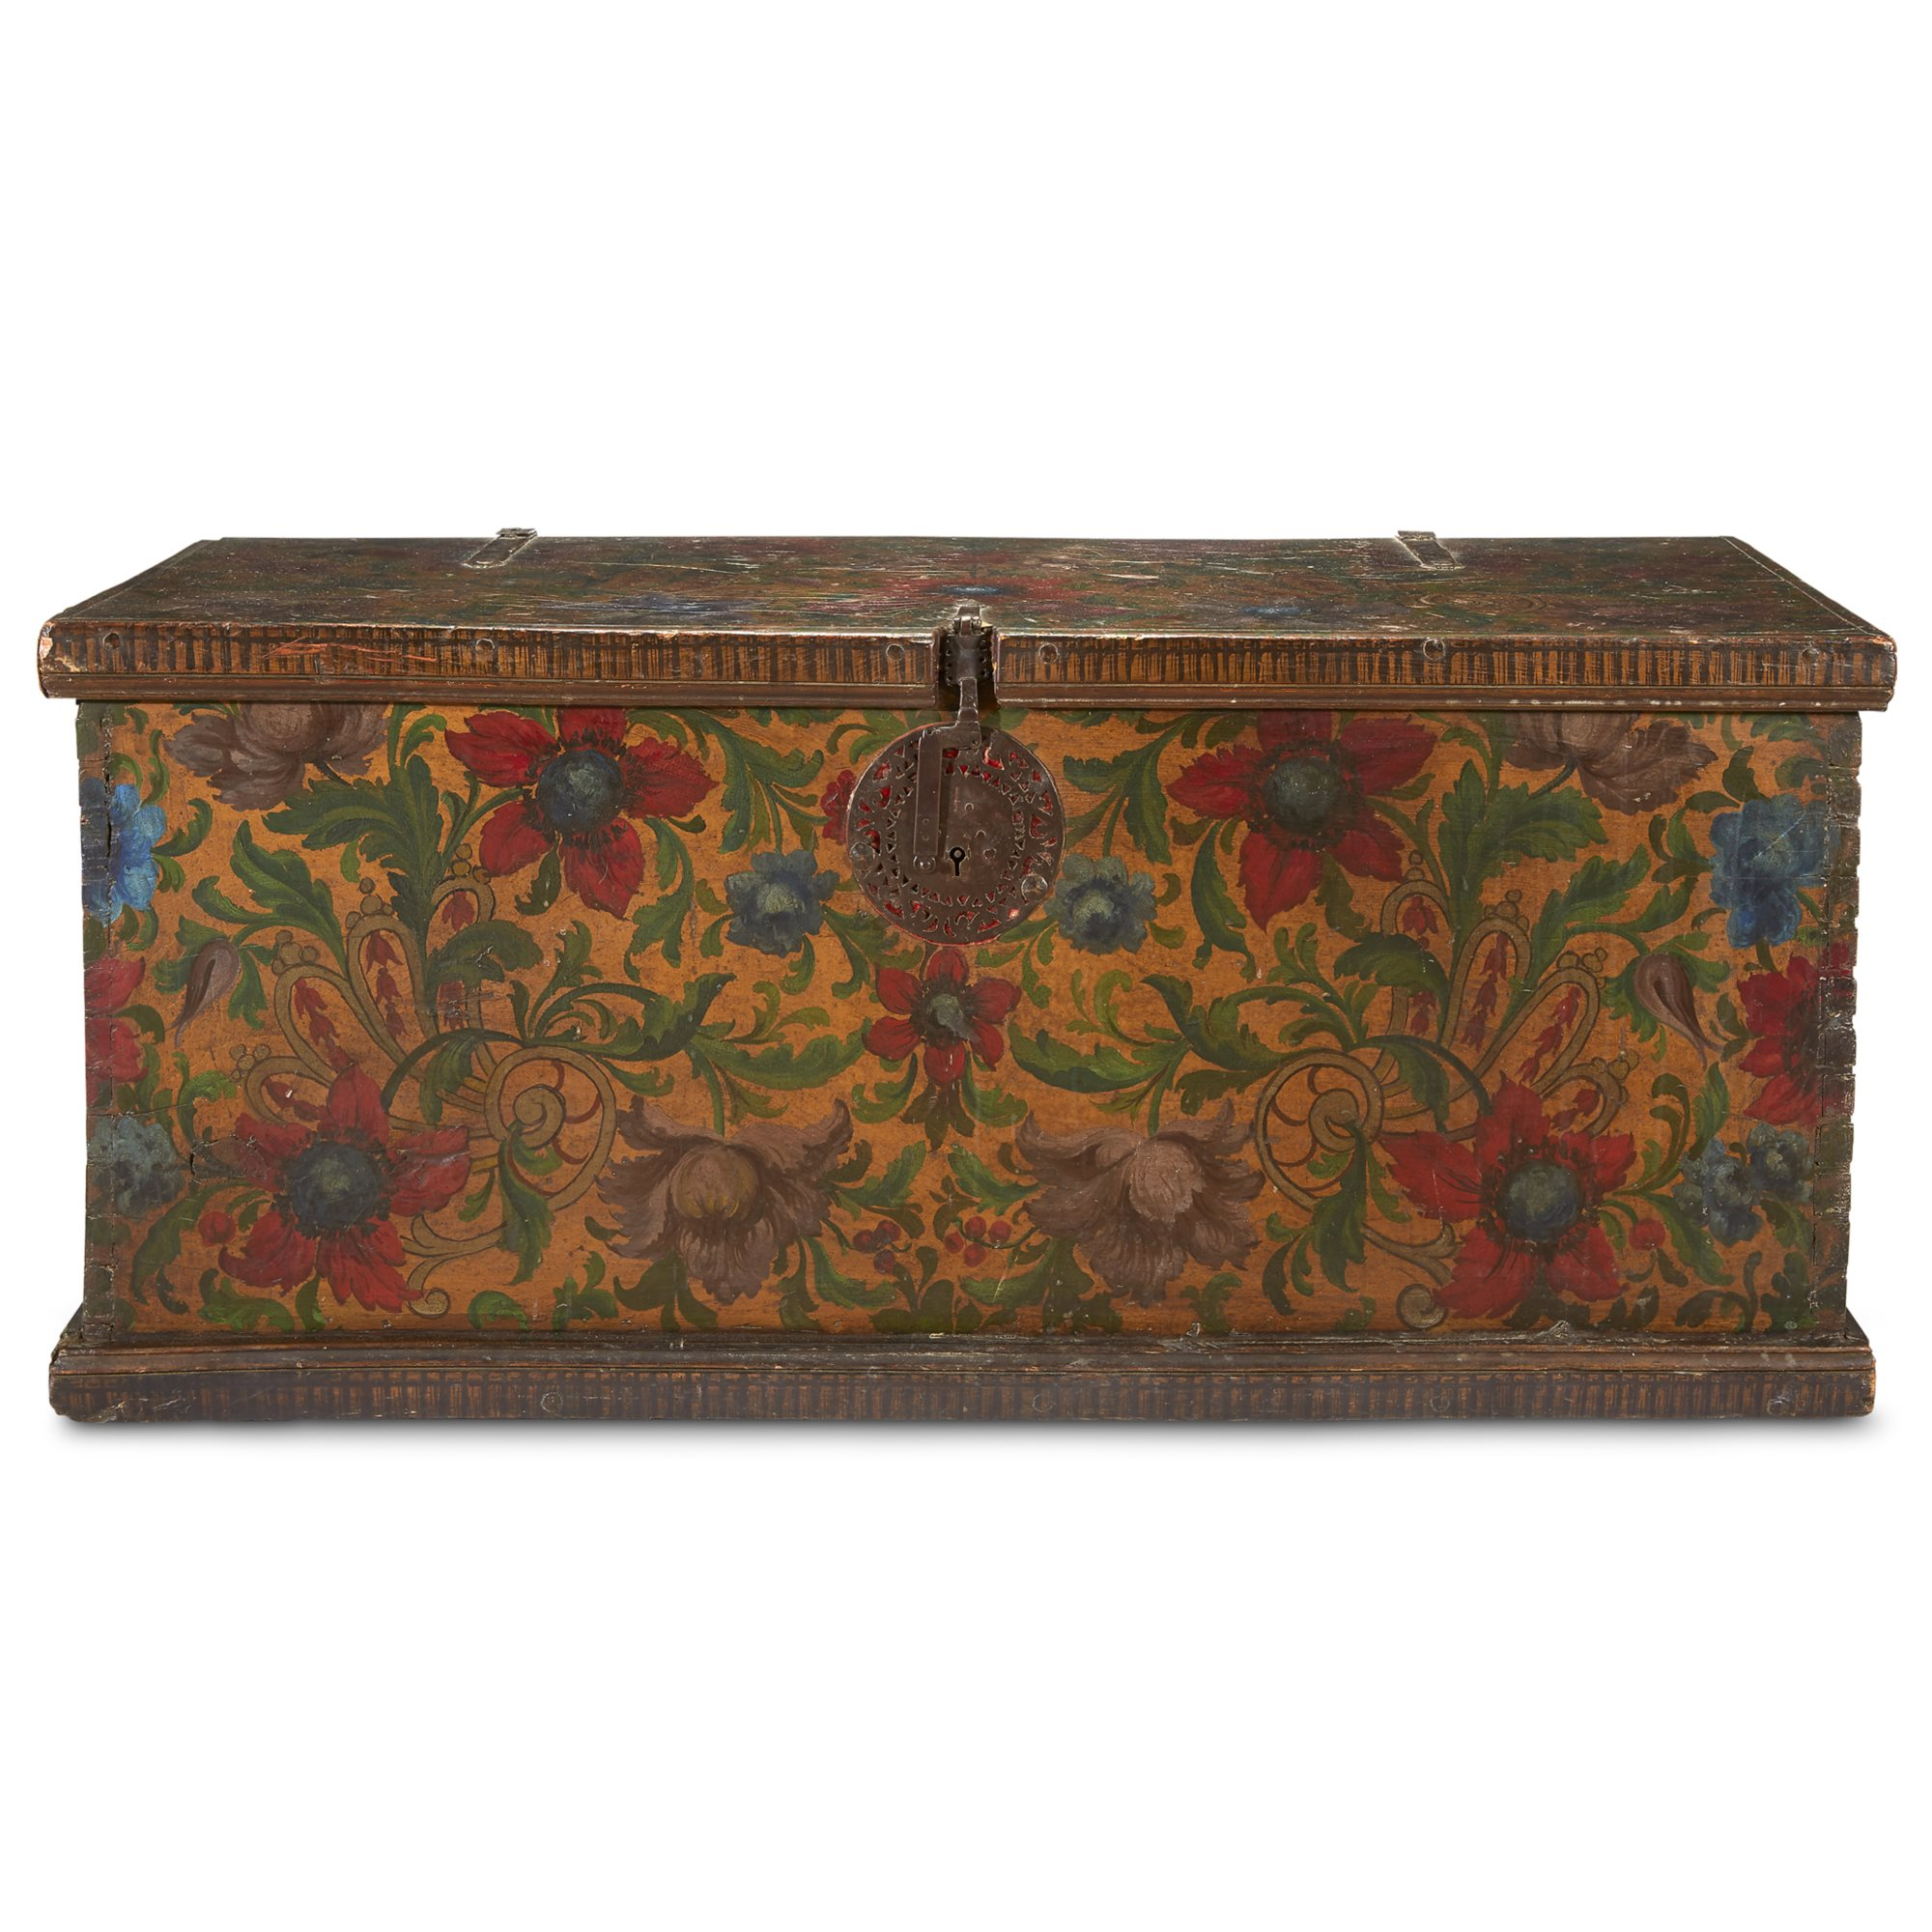 Lot 223: A Spanish Colonial Iron-Mounted Gilt and Polychrome Painted Blanket Chest, Possibly Peruvian, 18th century, $2,500-3,500, to be offered at Freeman's 04/10/19